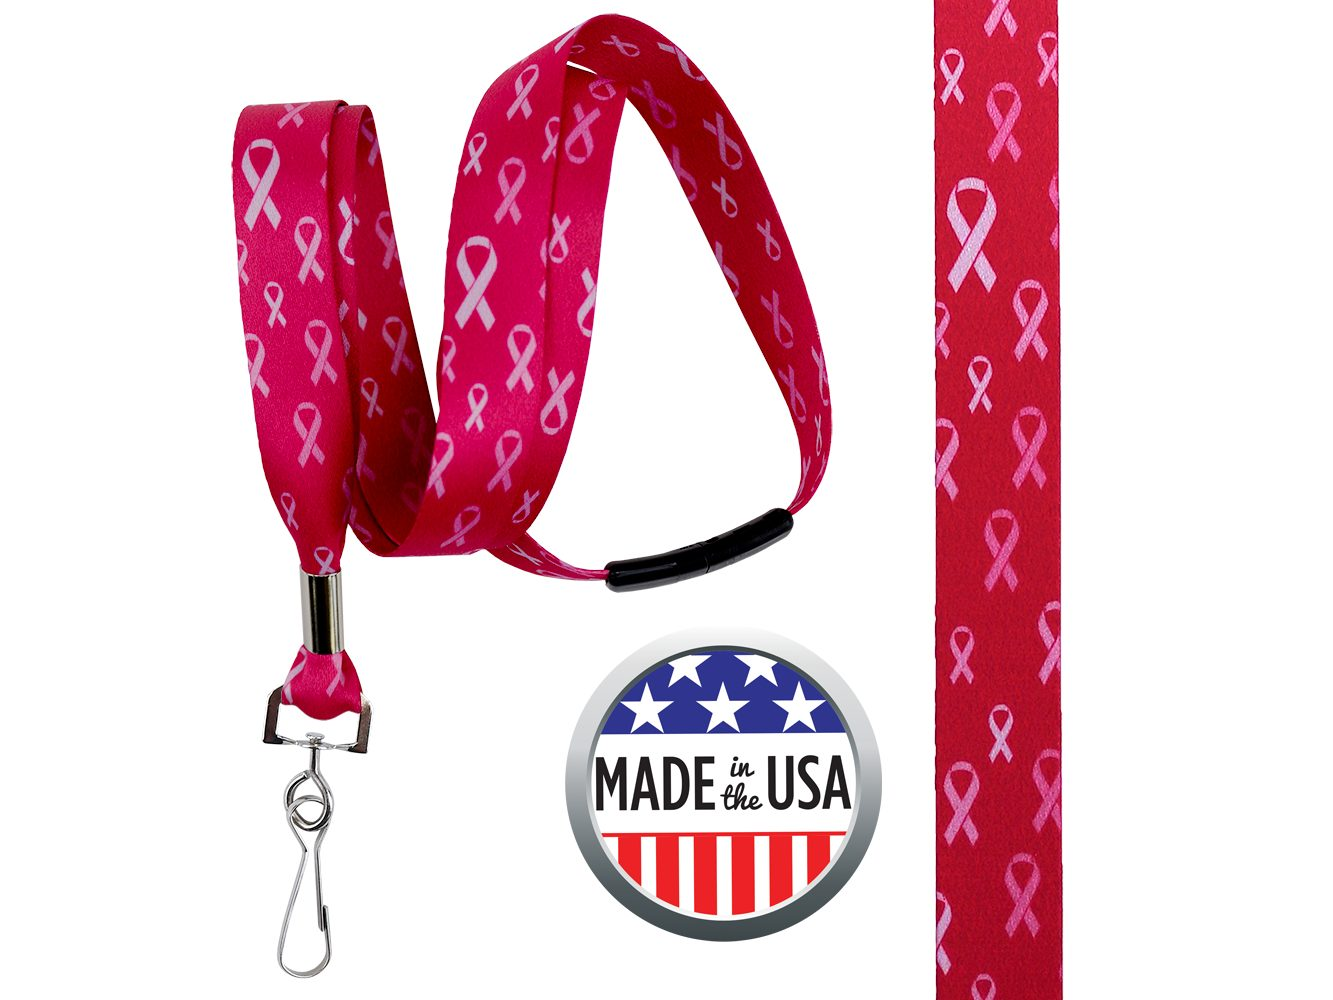 BHBCA06: 5/8″ Pre-decorated Breast Cancer Awareness Lanyards